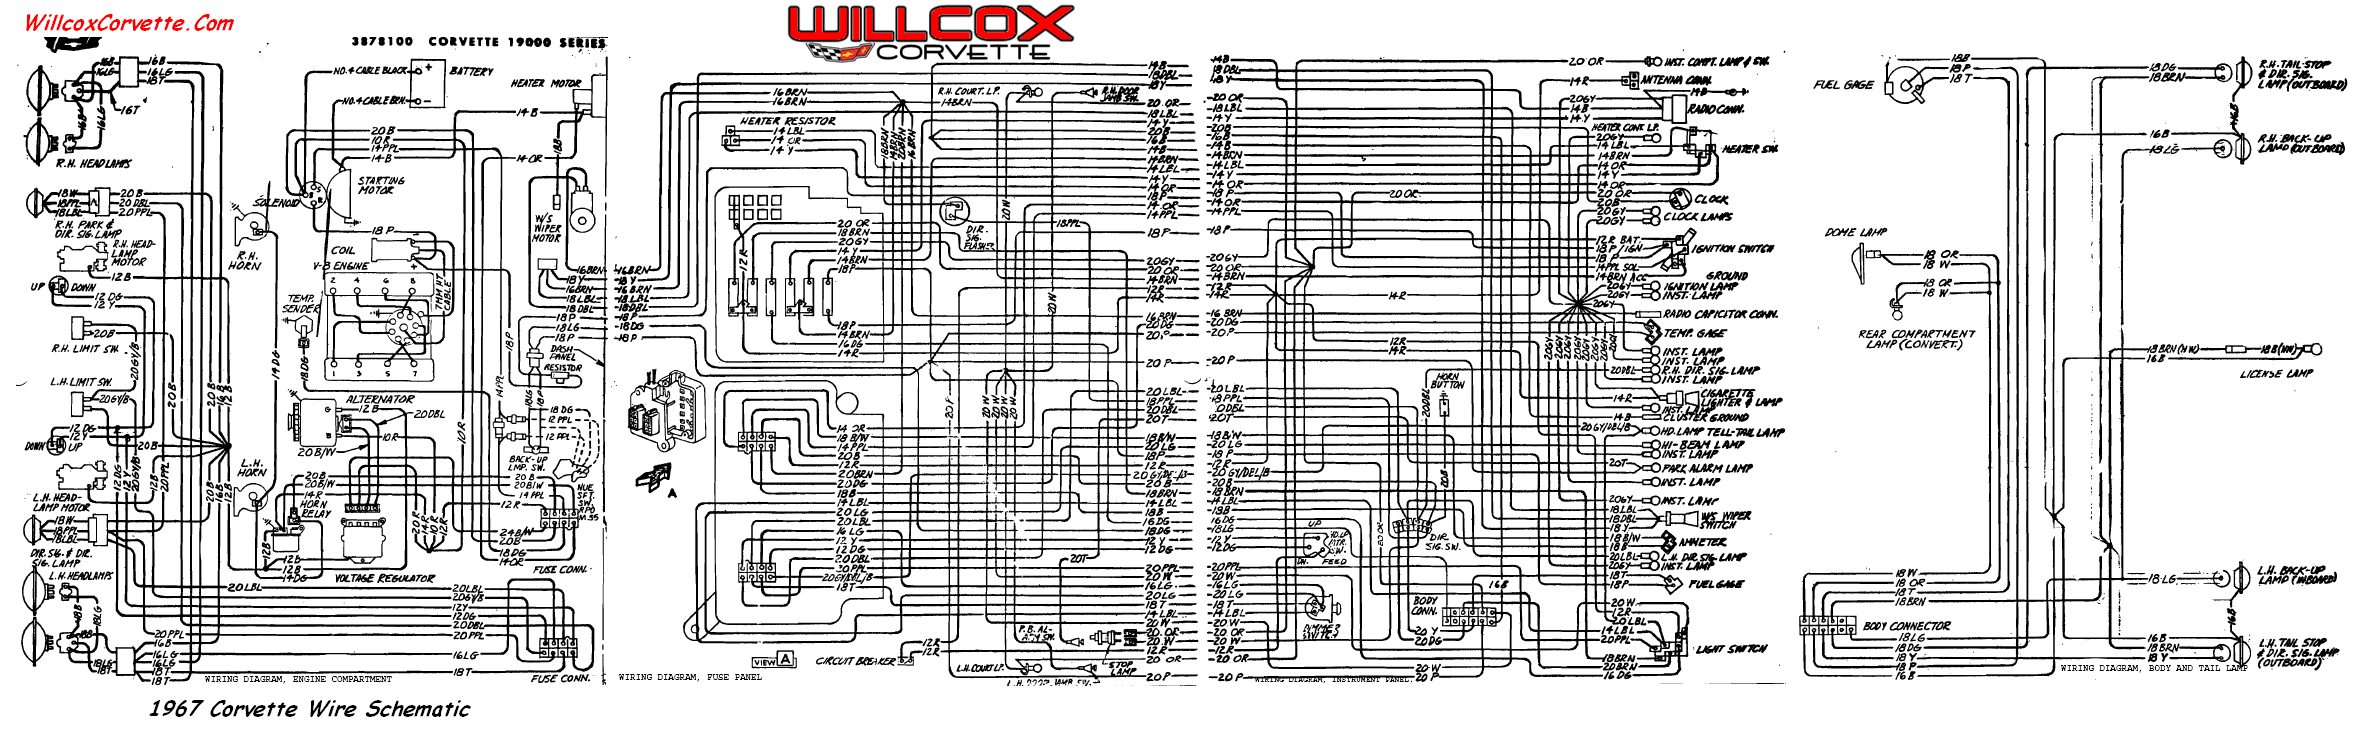 Wiring Diagram 1969 Corvette Data Library 2000 Gtp Free Download Schematic Wiper Diagrams Rh Deemusic Co